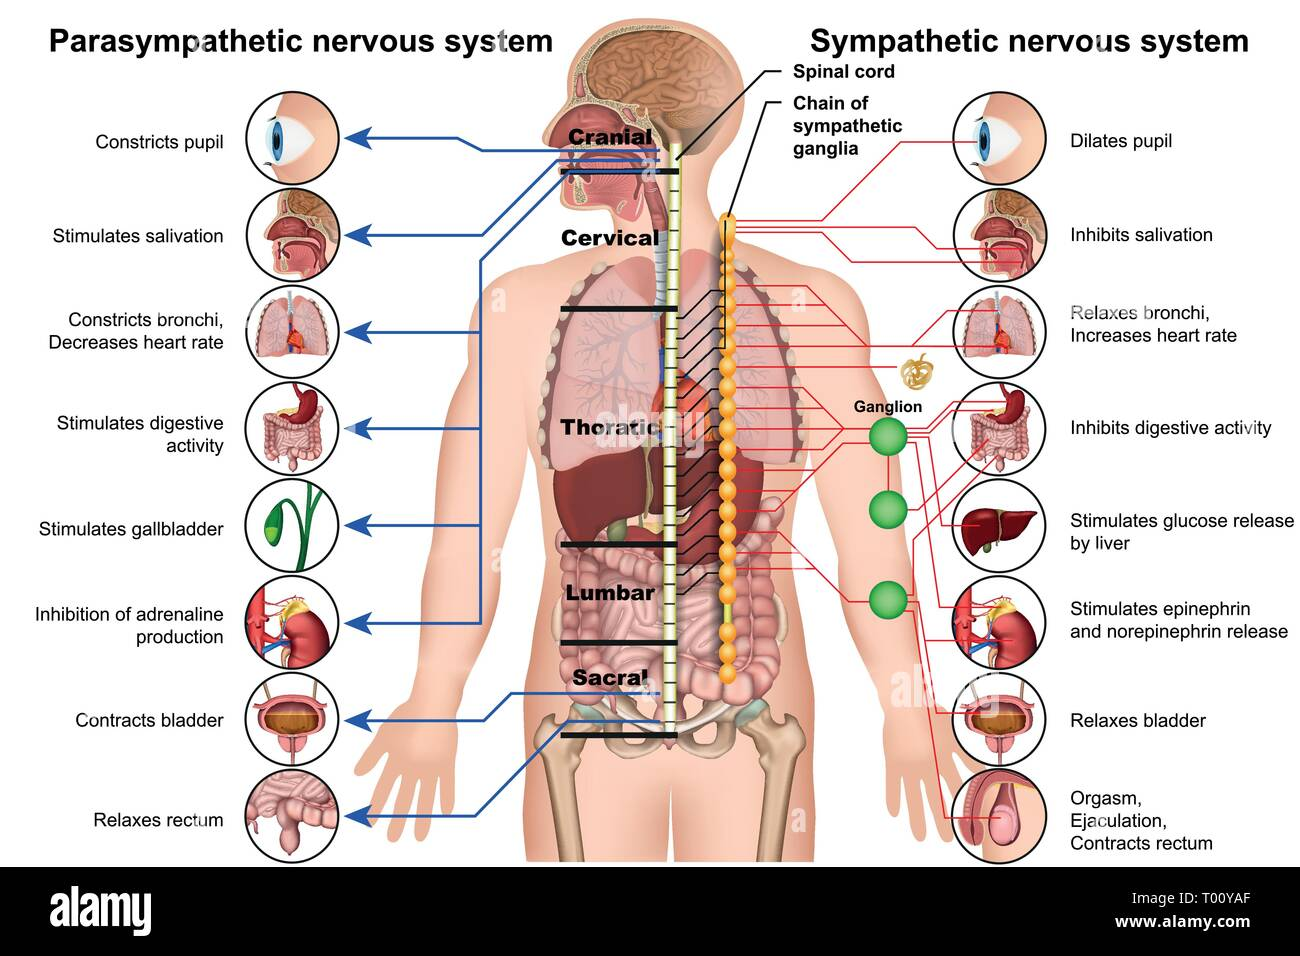 sympathetic and parasympathetic nervous system 3d medical vector illustration on white background - Stock Image